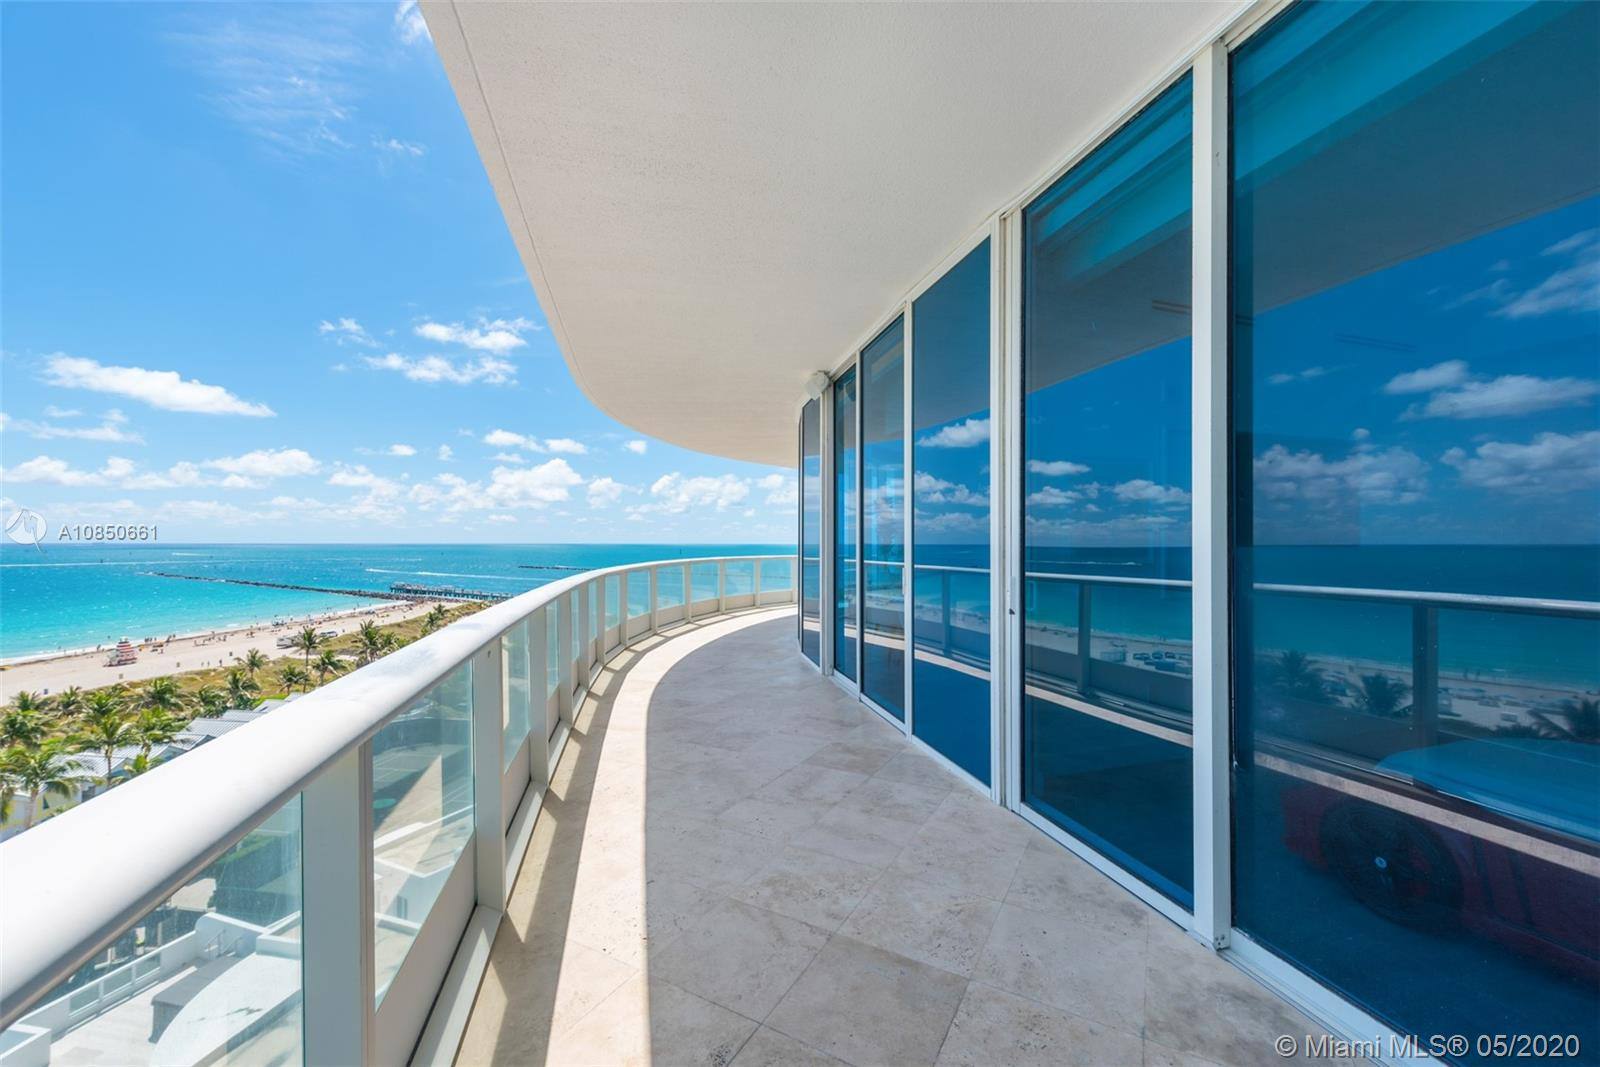 100 Pointe dr-1006 miami-beach-fl-33139-a10850661-Pic09